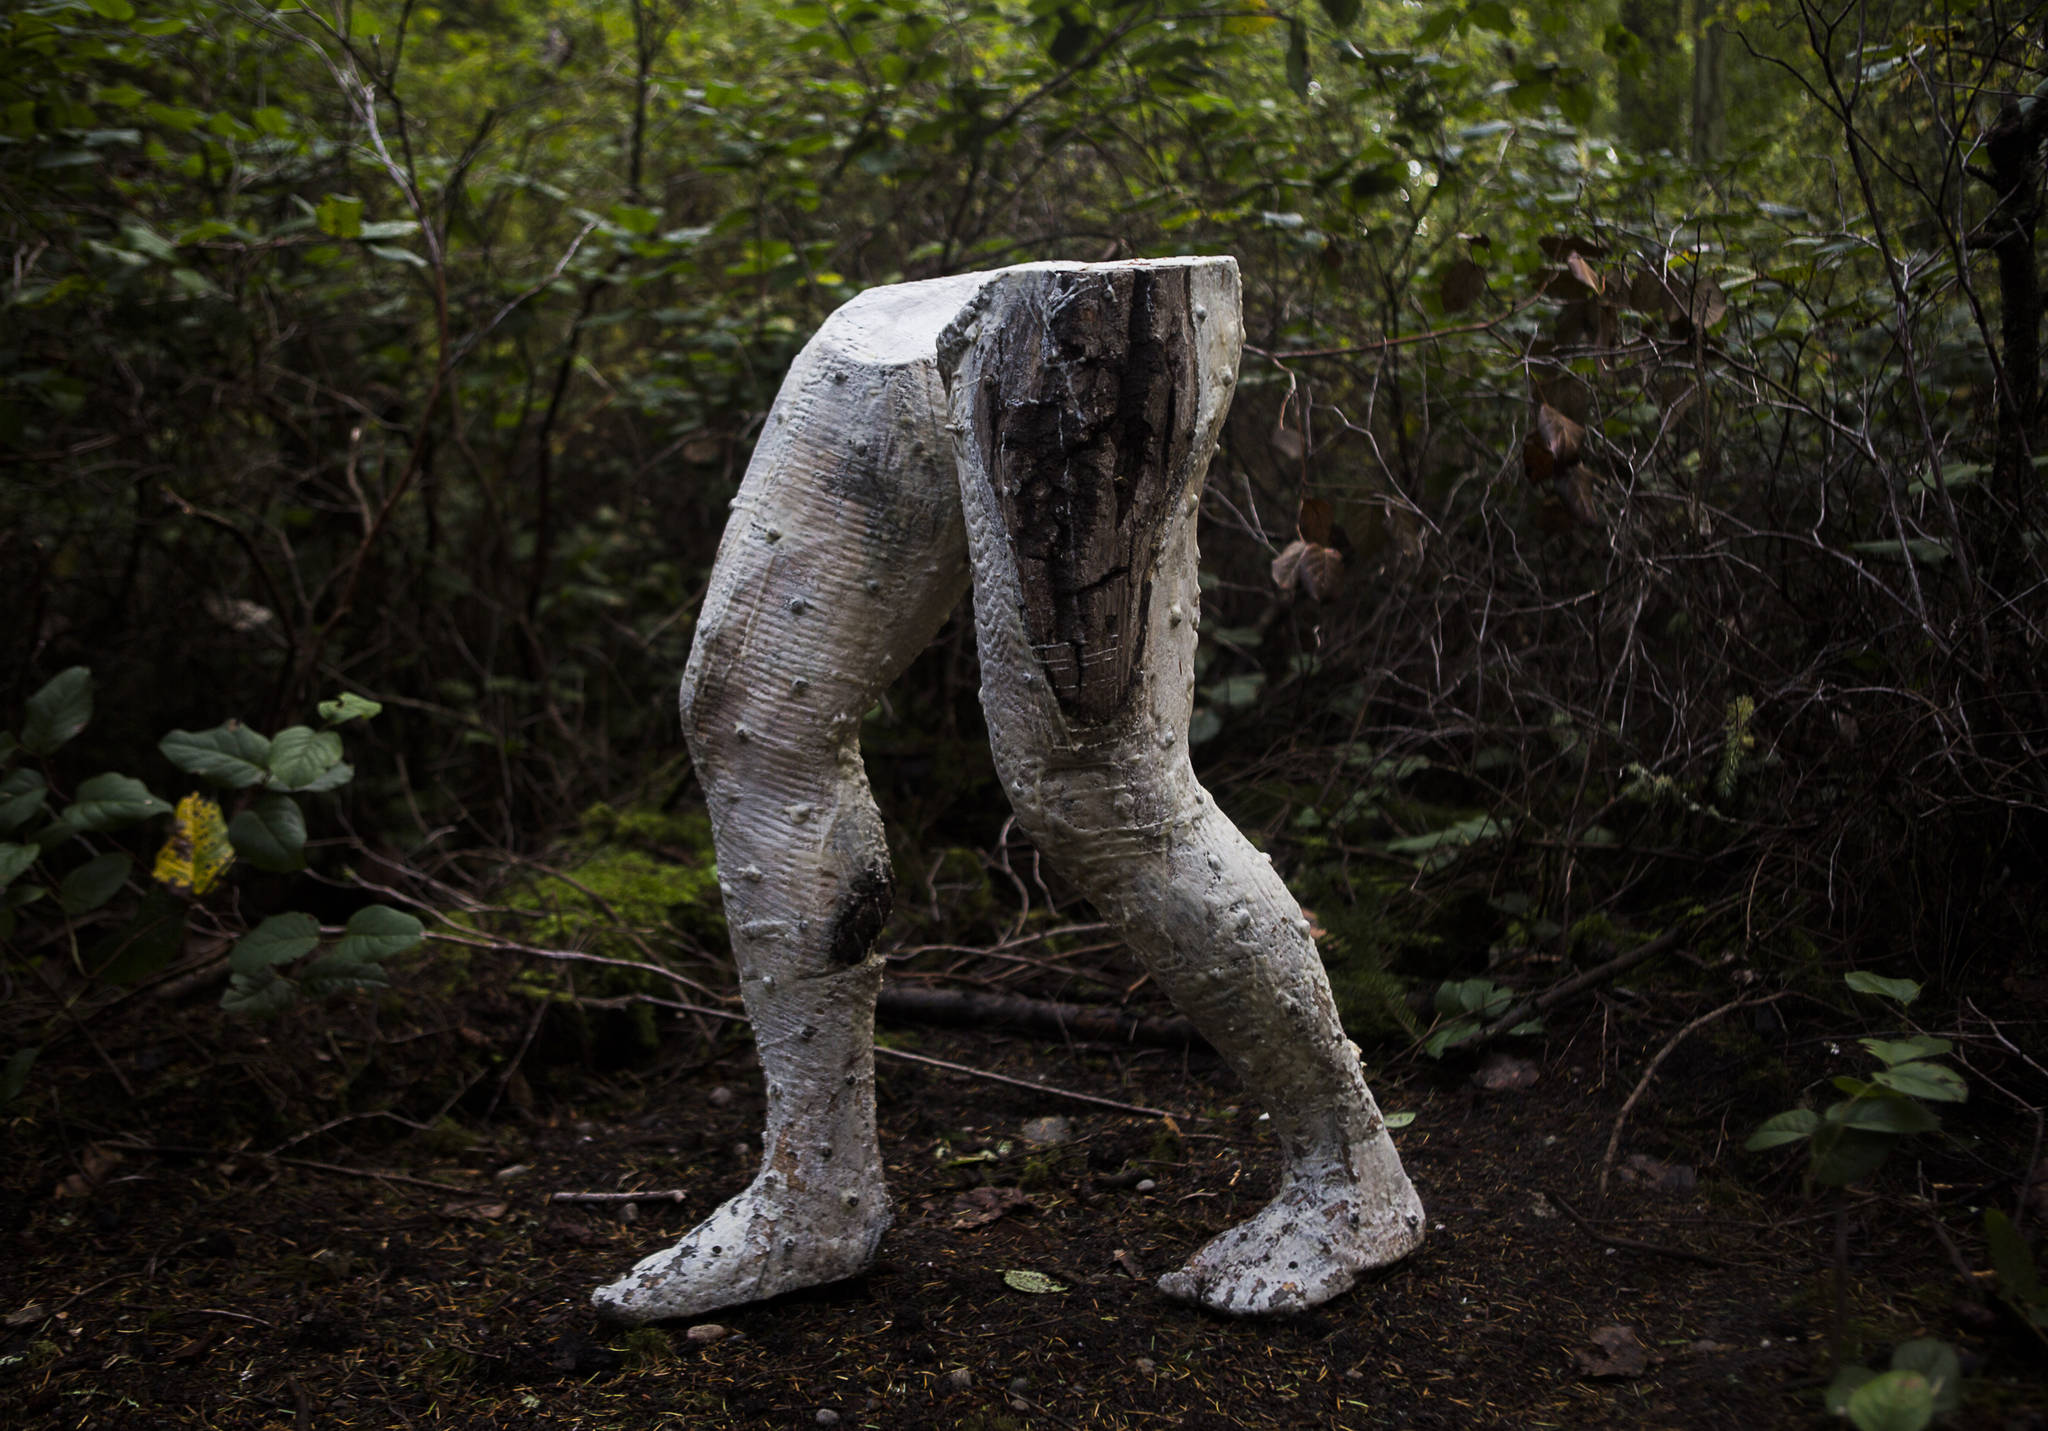 """David D'Ostilio's """"The Foundation of Animalia and Fungi,"""" a sculpture that incorporates live animalia and fungi, is featured in the new Price Sculpture Forest in Coupeville. (Olivia Vanni / The Herald)"""